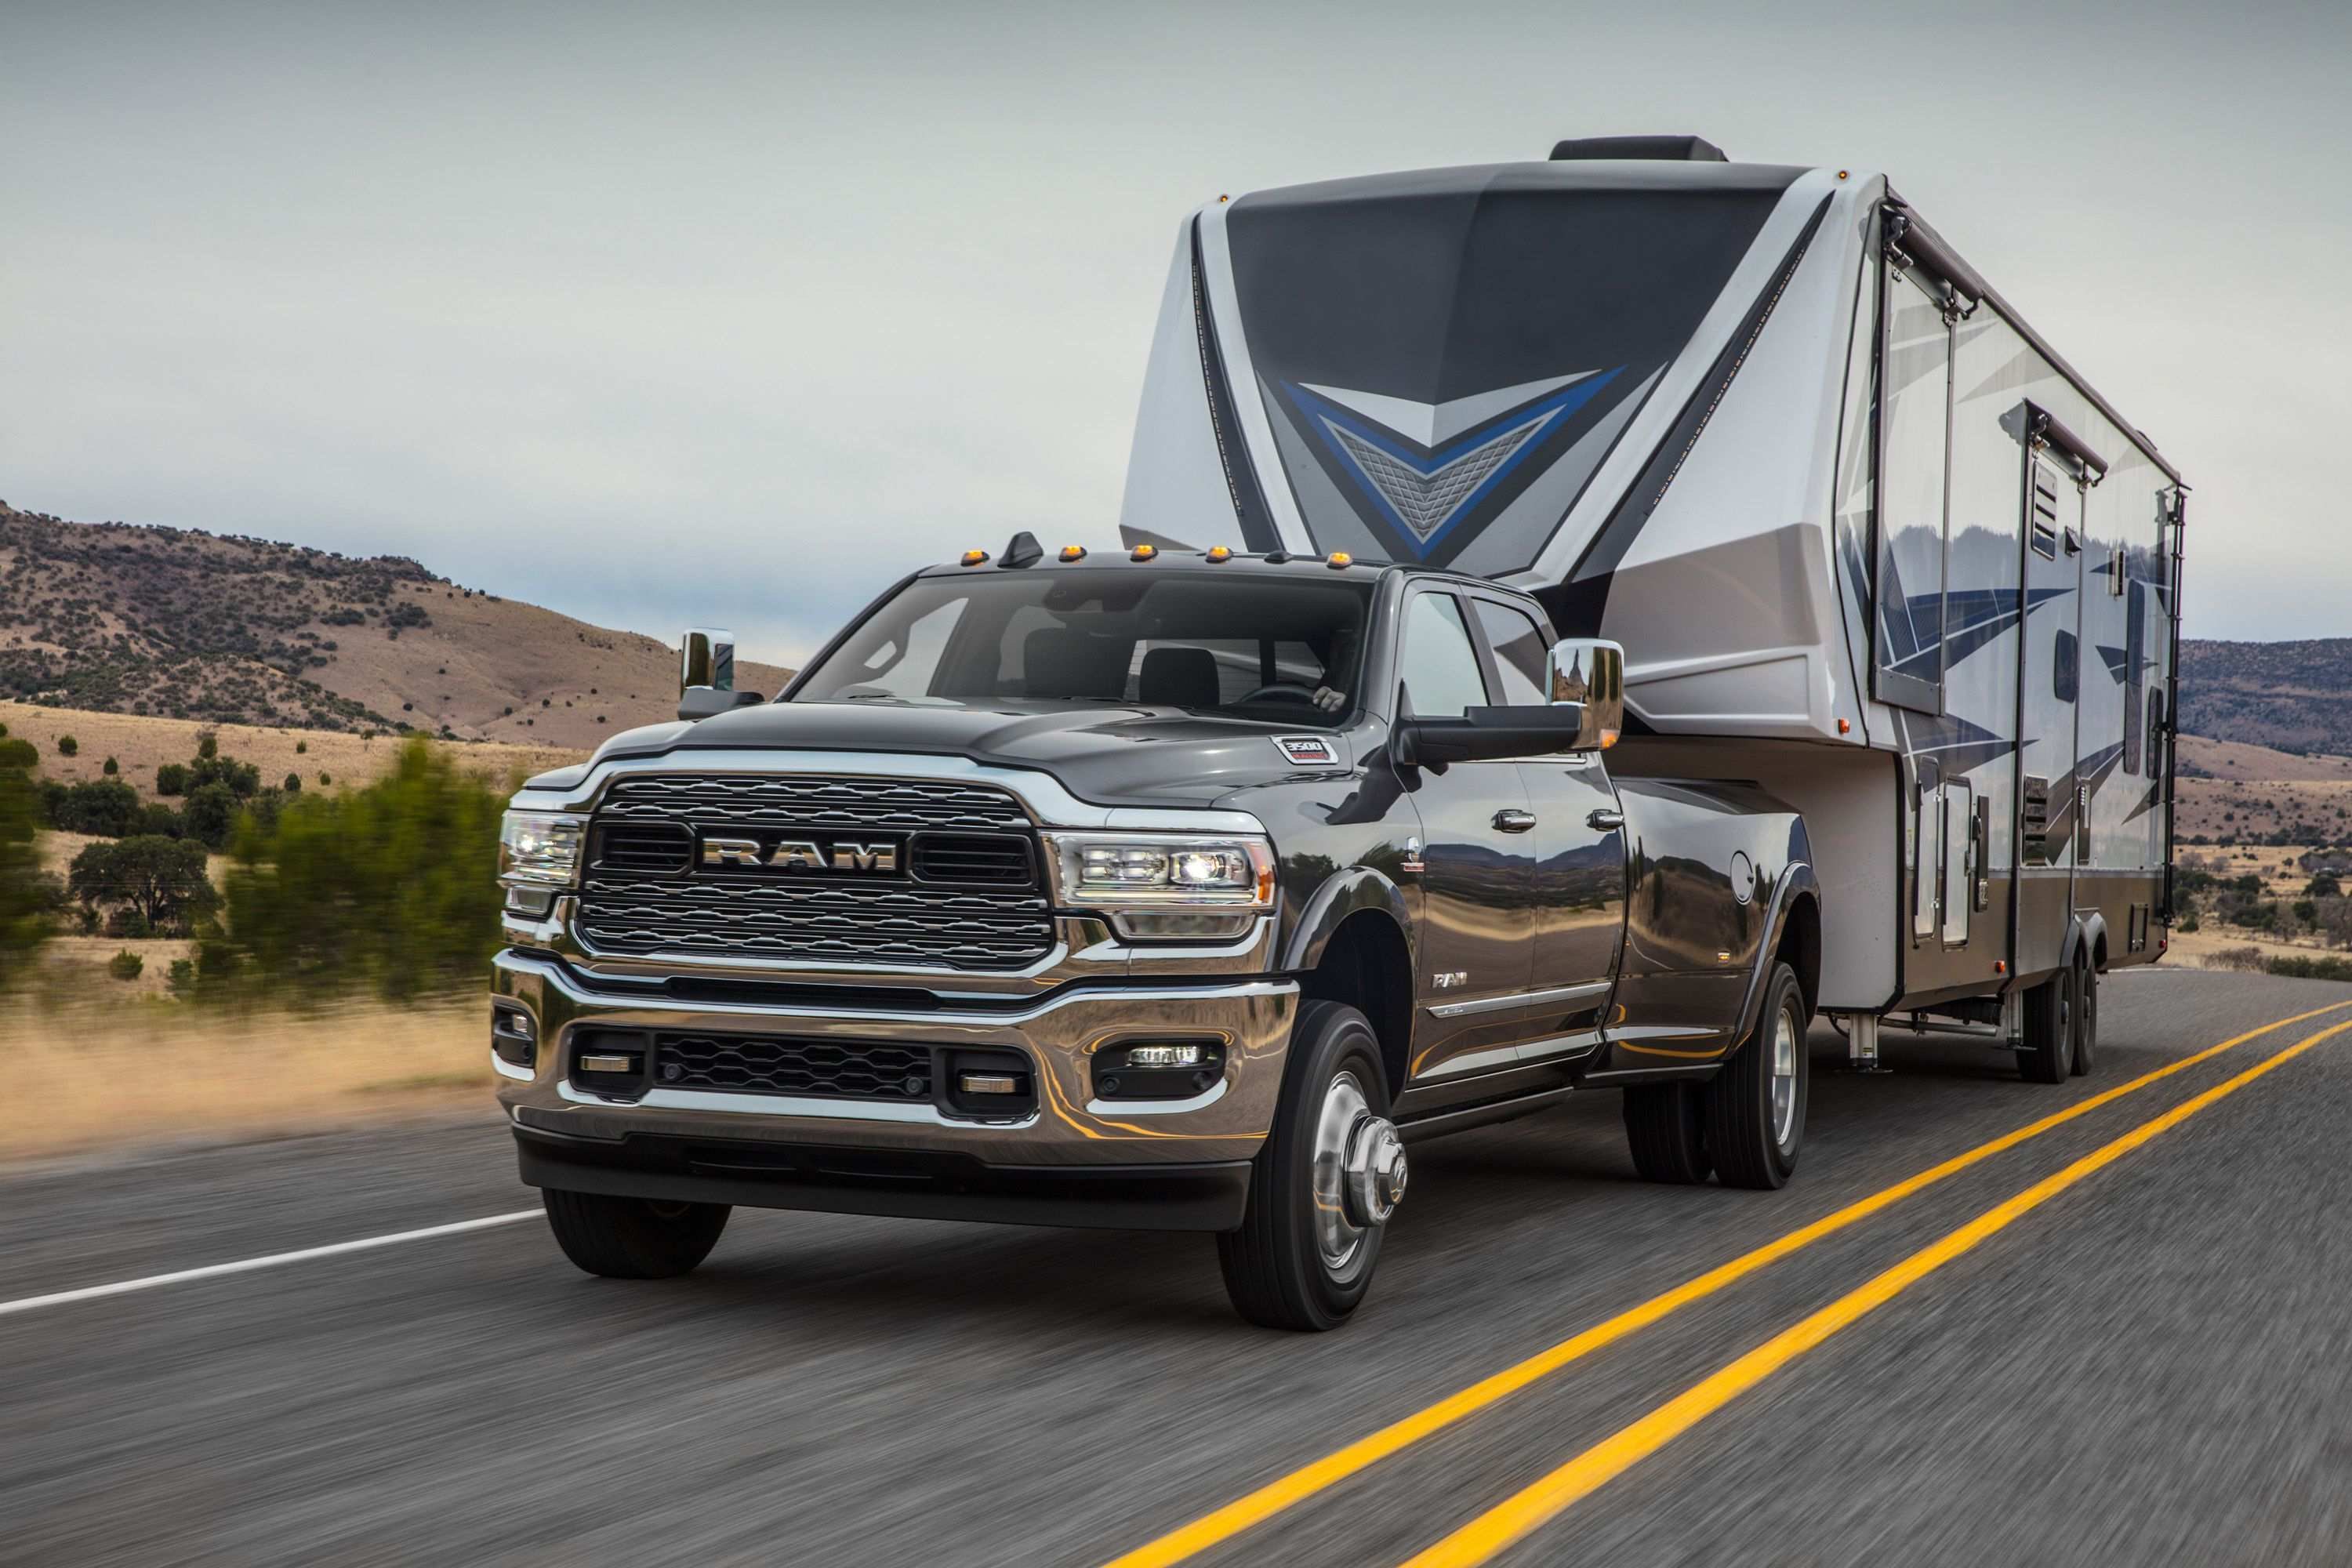 77 New 2020 Dodge Ram 3500 Wallpaper